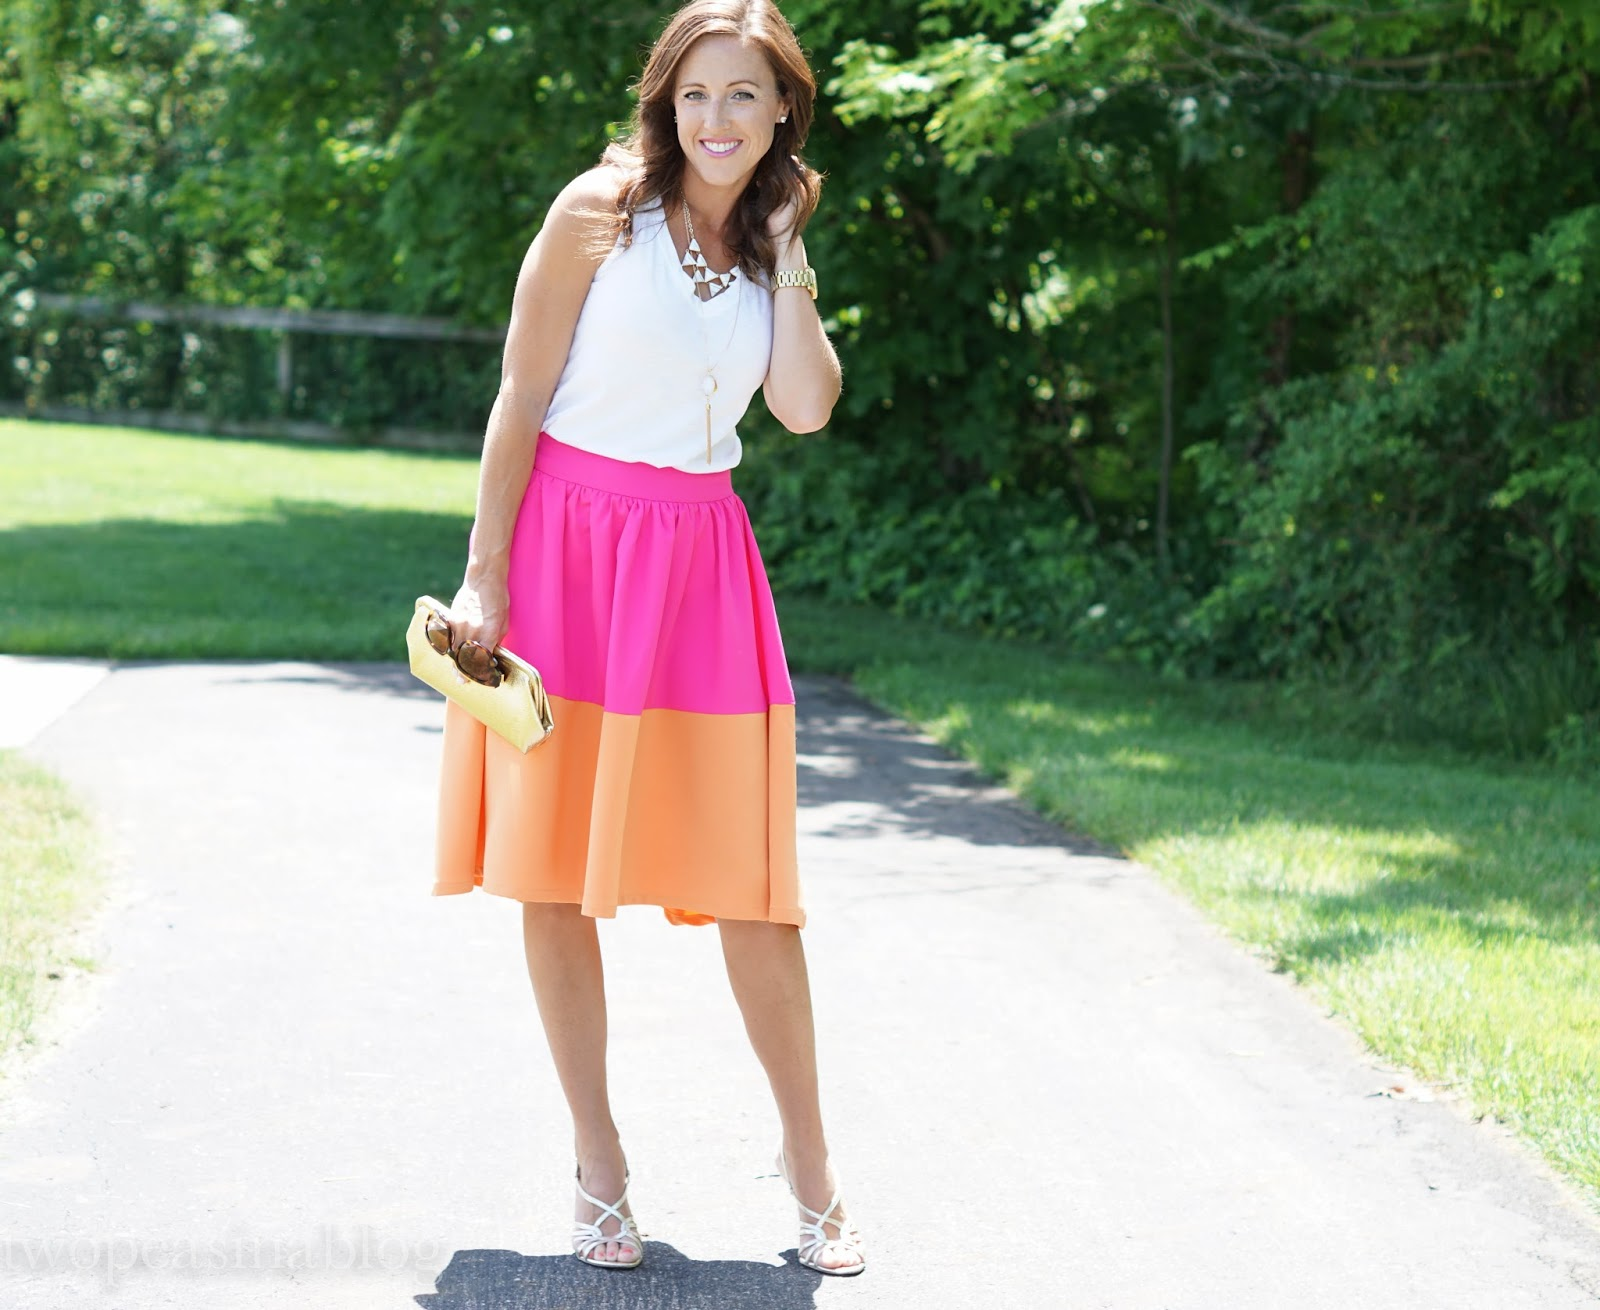 292d0727a512 How fun is this midi skirt from Mindy Mae's Market? It immediately caught  my eye when I saw it on their website. The slight hi-low cut and bright  color ...